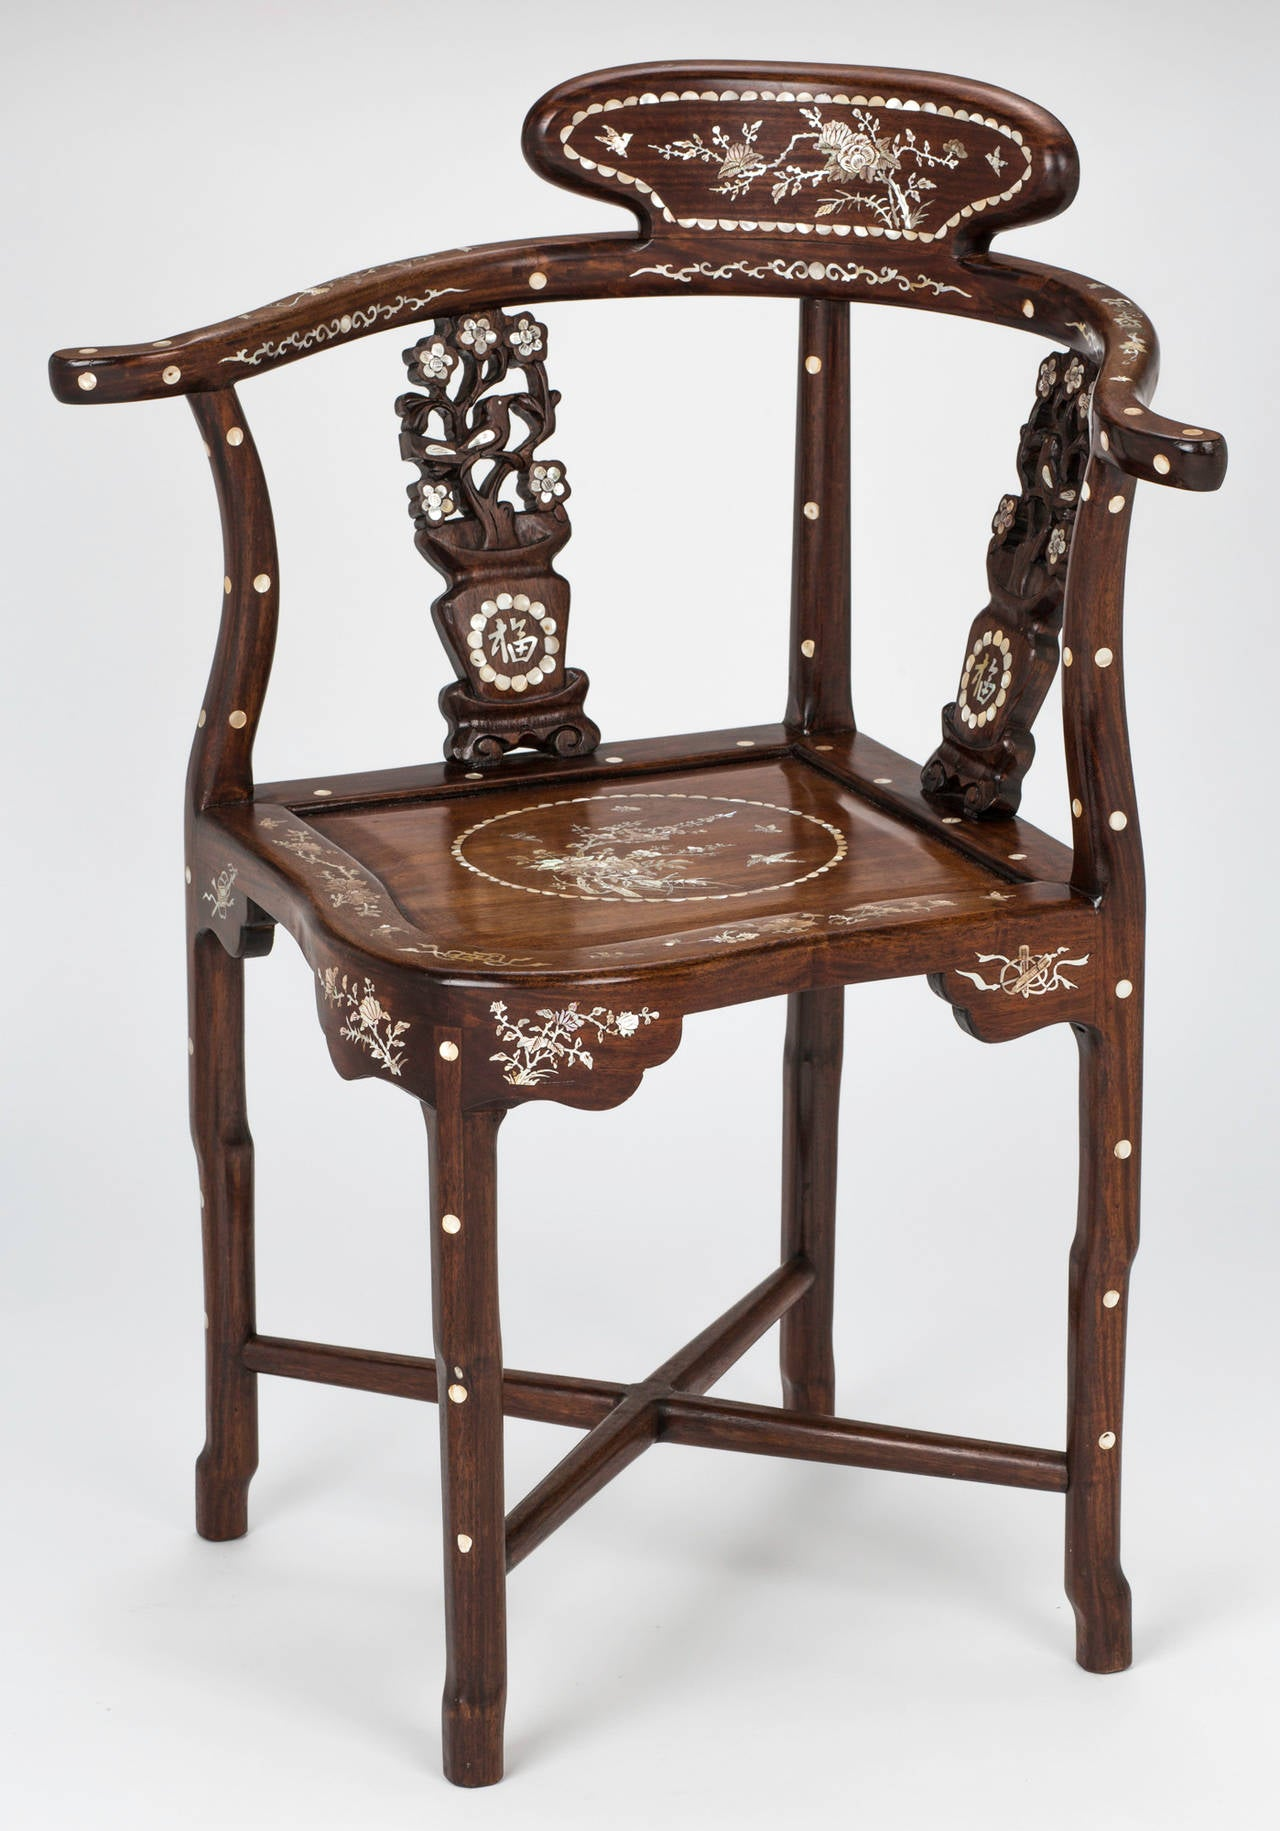 Four Rosewood Mother of Pearl Inlay Corner Chair at 1stdibs